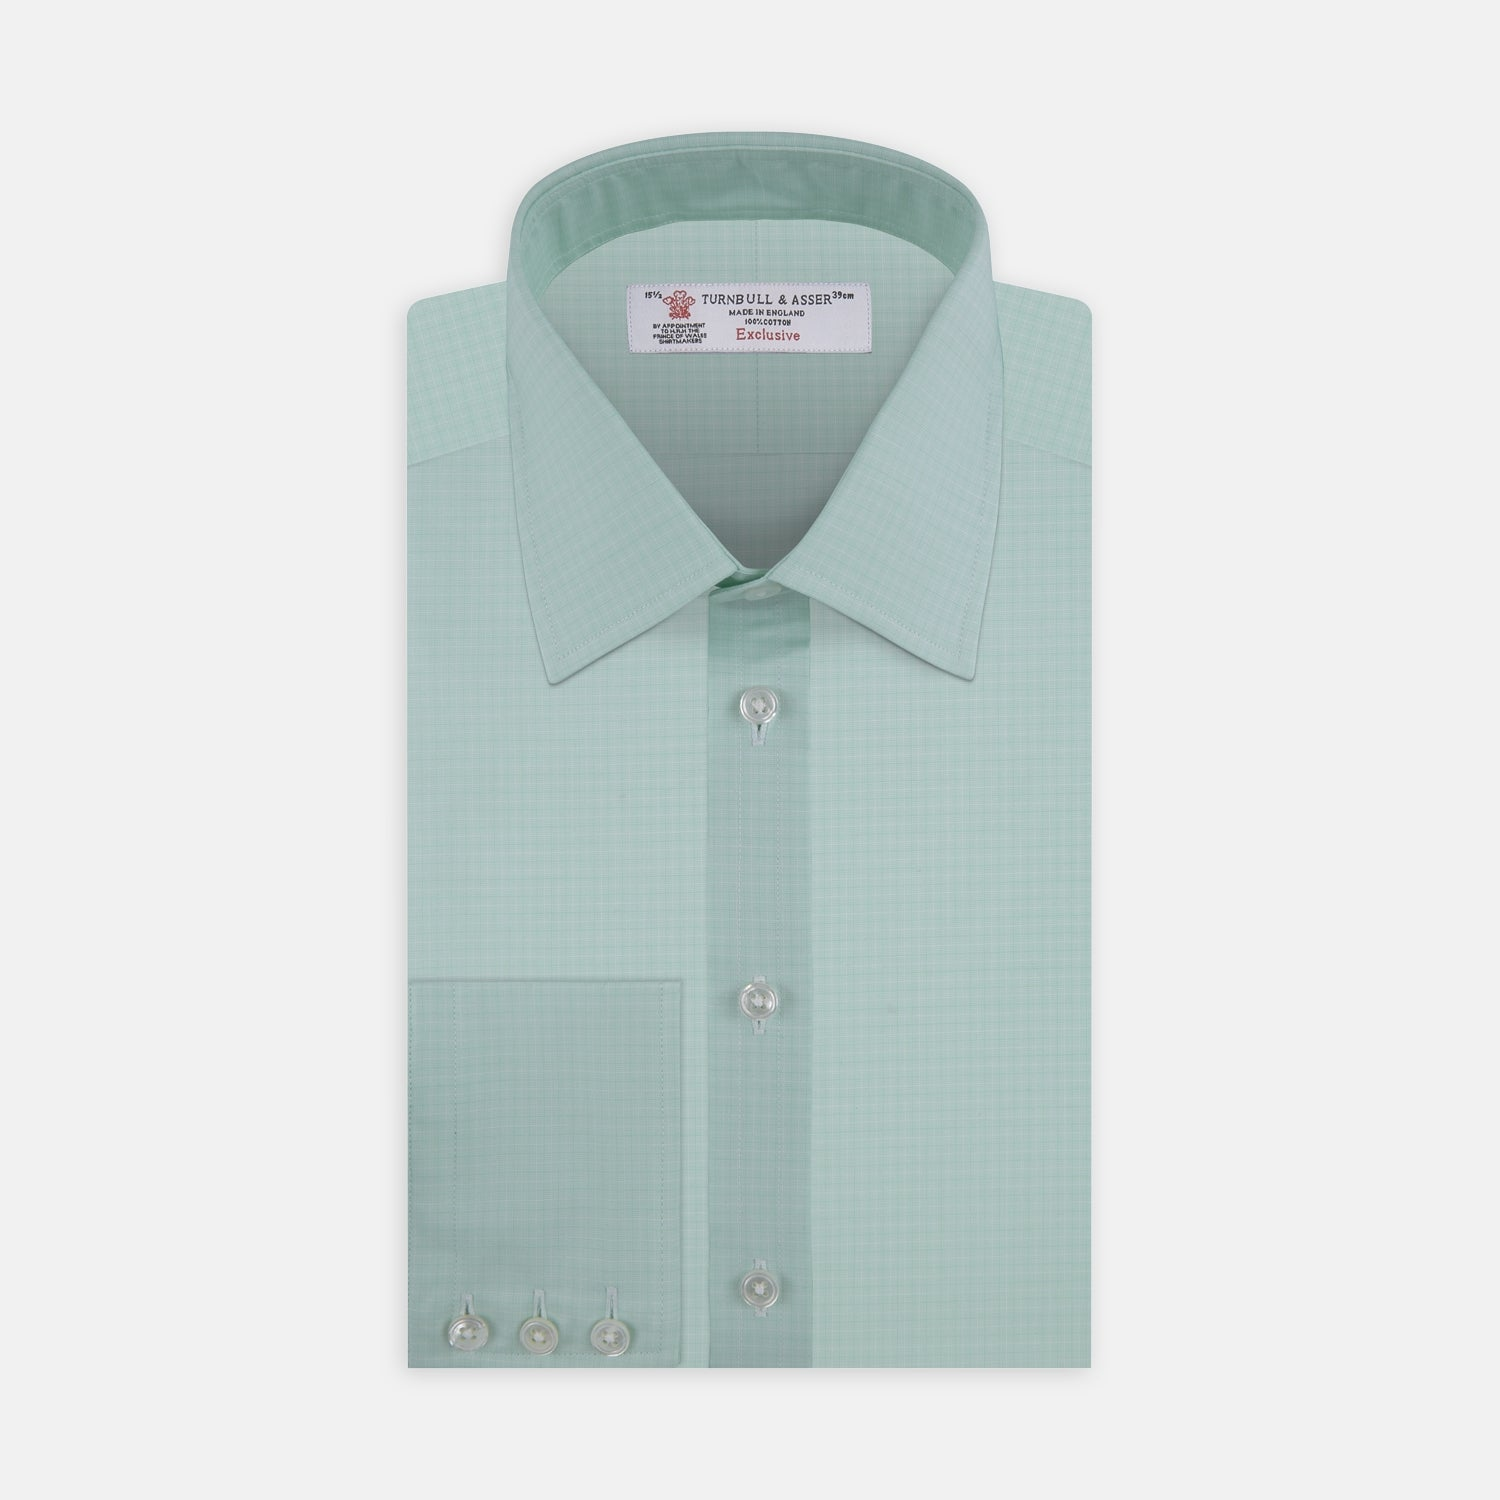 Green Faded Check Shirt with Classic T&A Collar and Button Cuffs